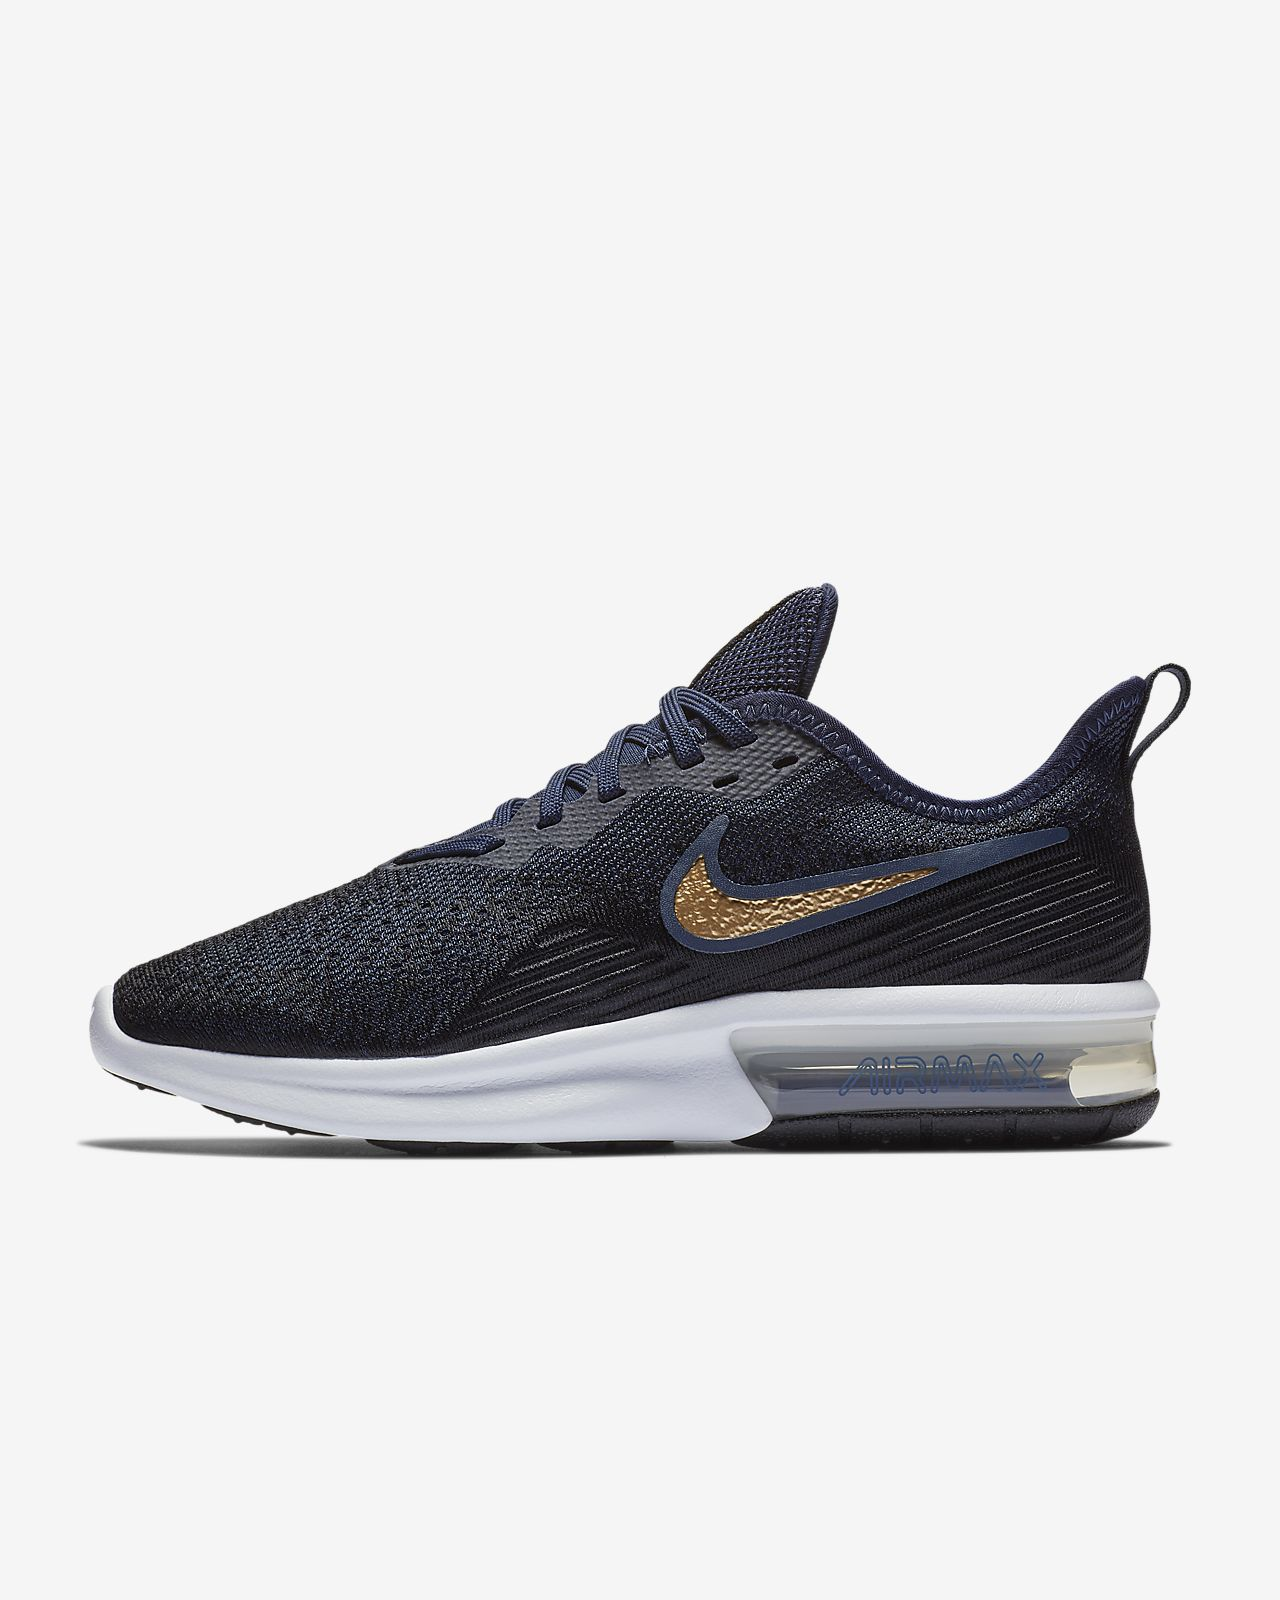 516d9178aceec8 Nike Air Max Sequent 4 Women s Shoe. Nike.com AU